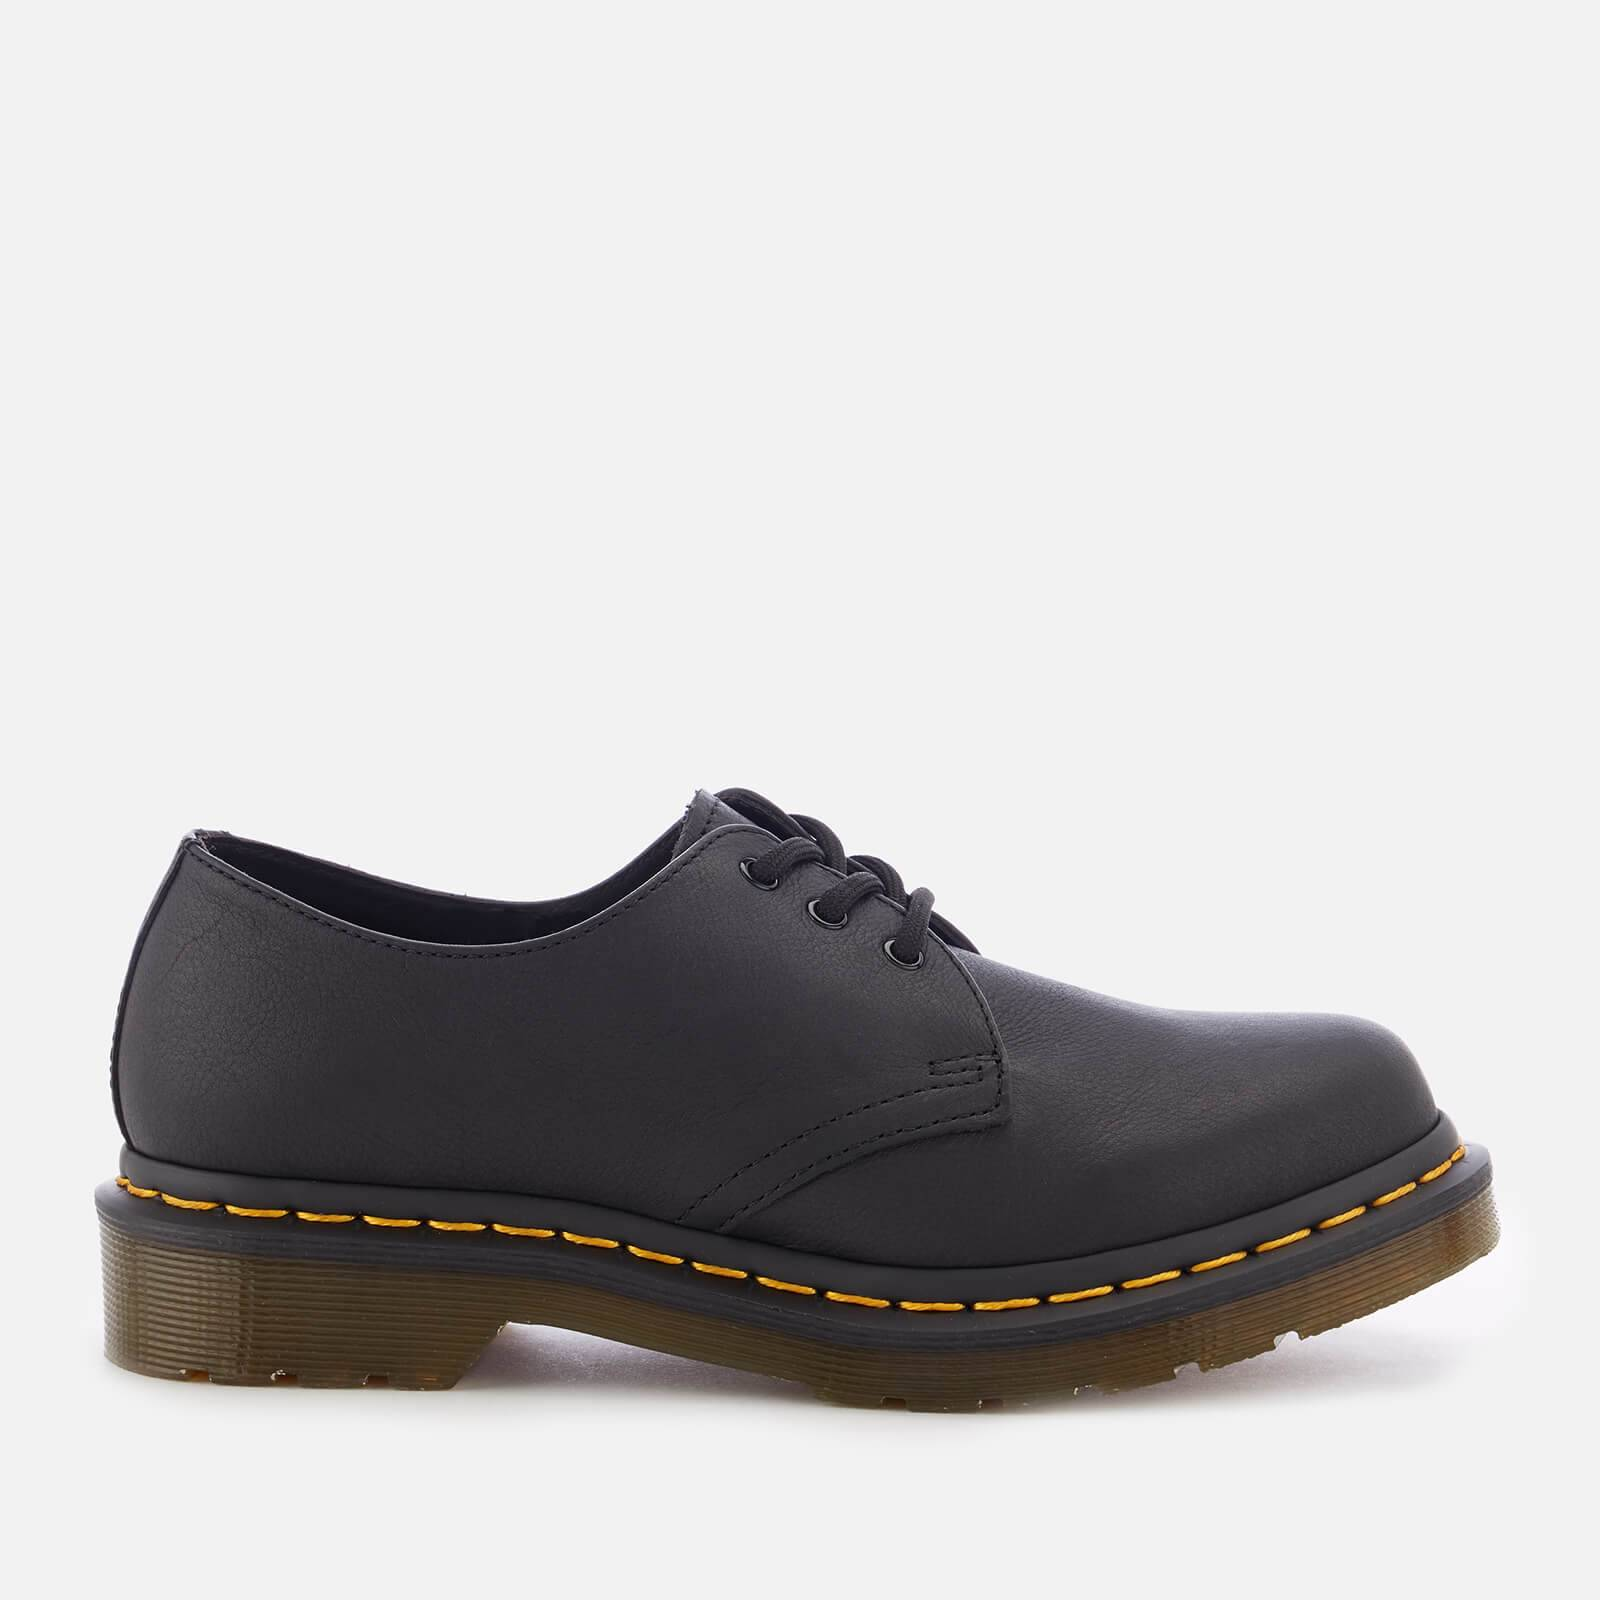 Dr. Martens Women's 1461 W Virginia Leather 3-Eye Shoes - Black - UK 3 - Black